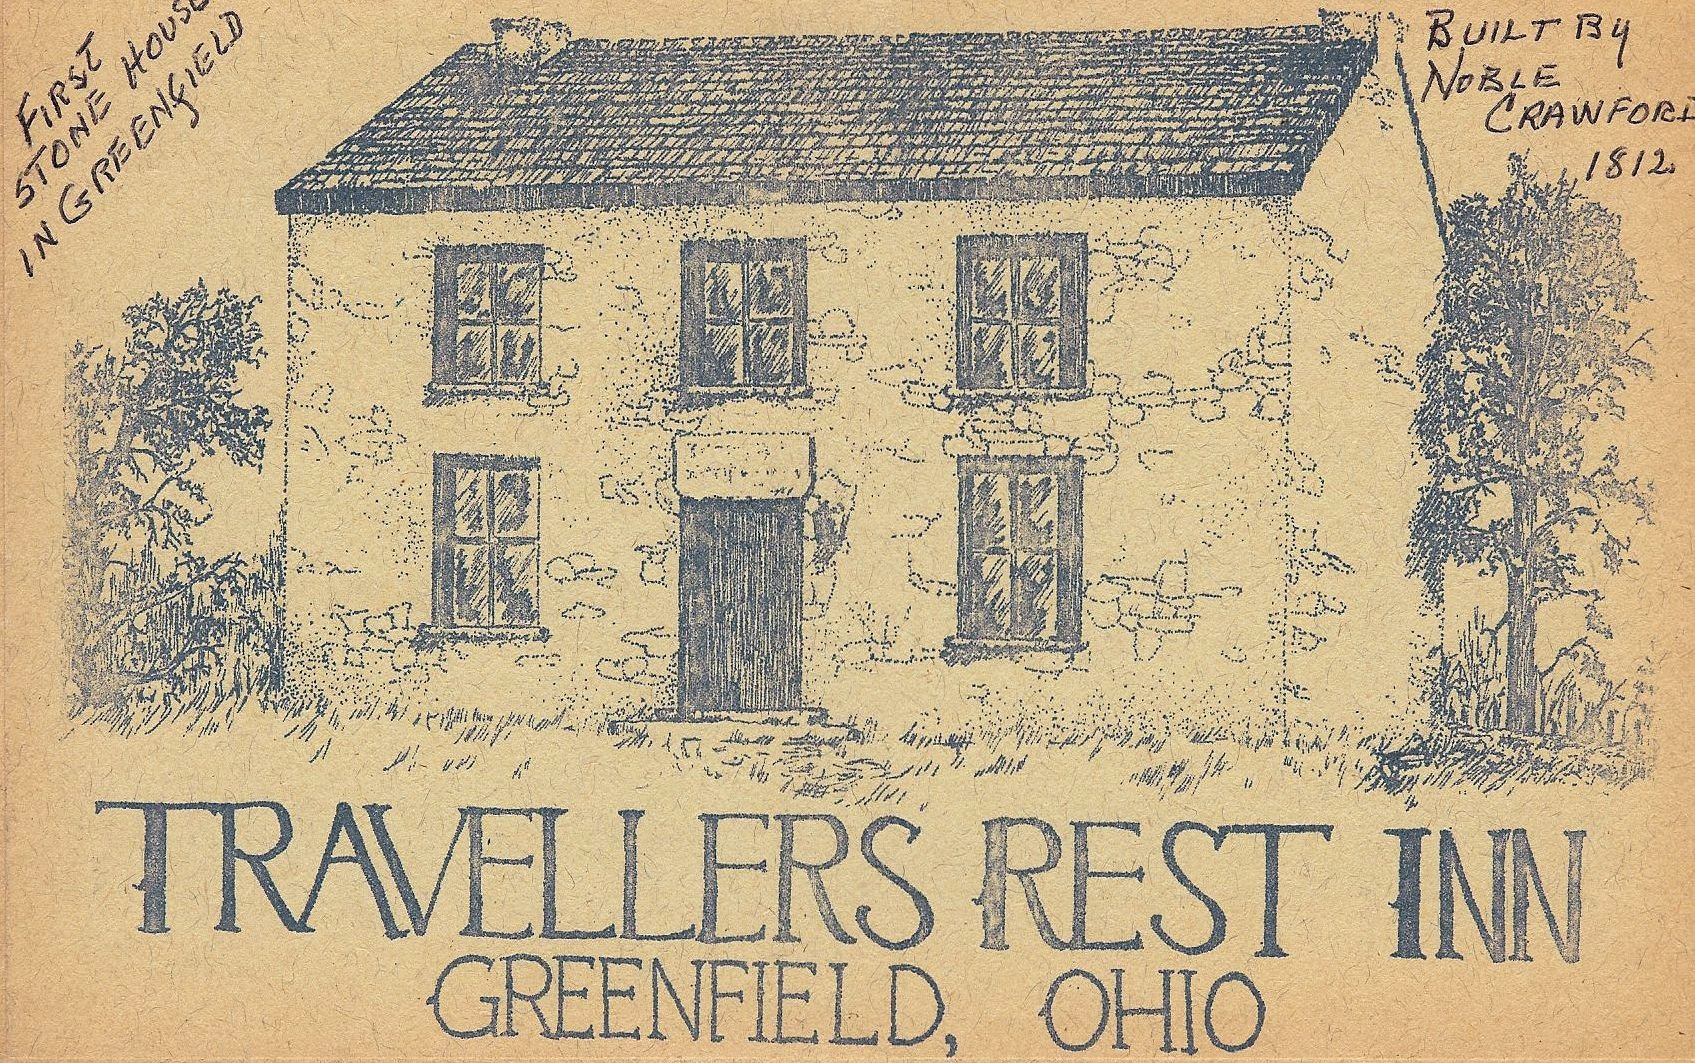 This is the cover page of an early booklet describing Travellers Rest